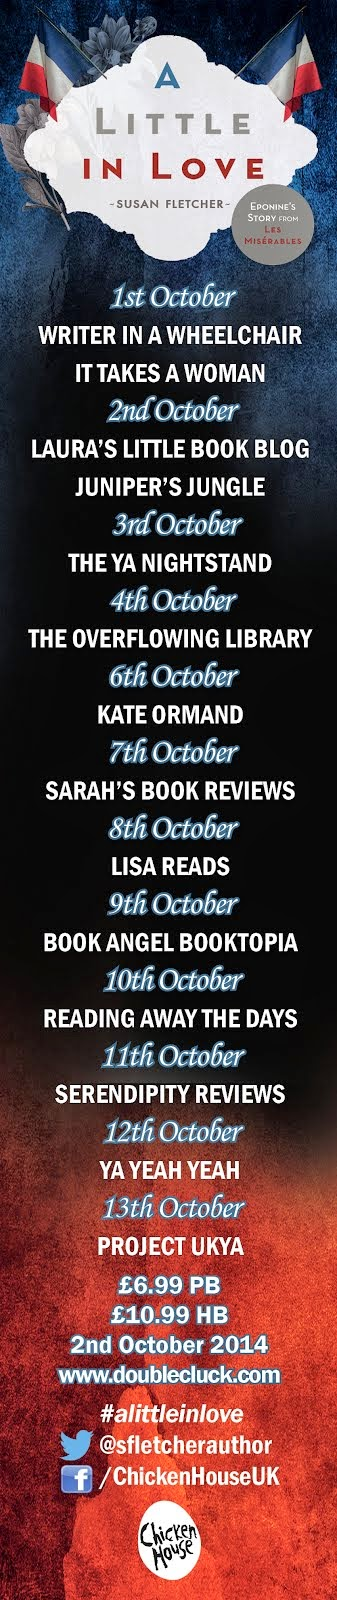 A Little In Love Blog Tour